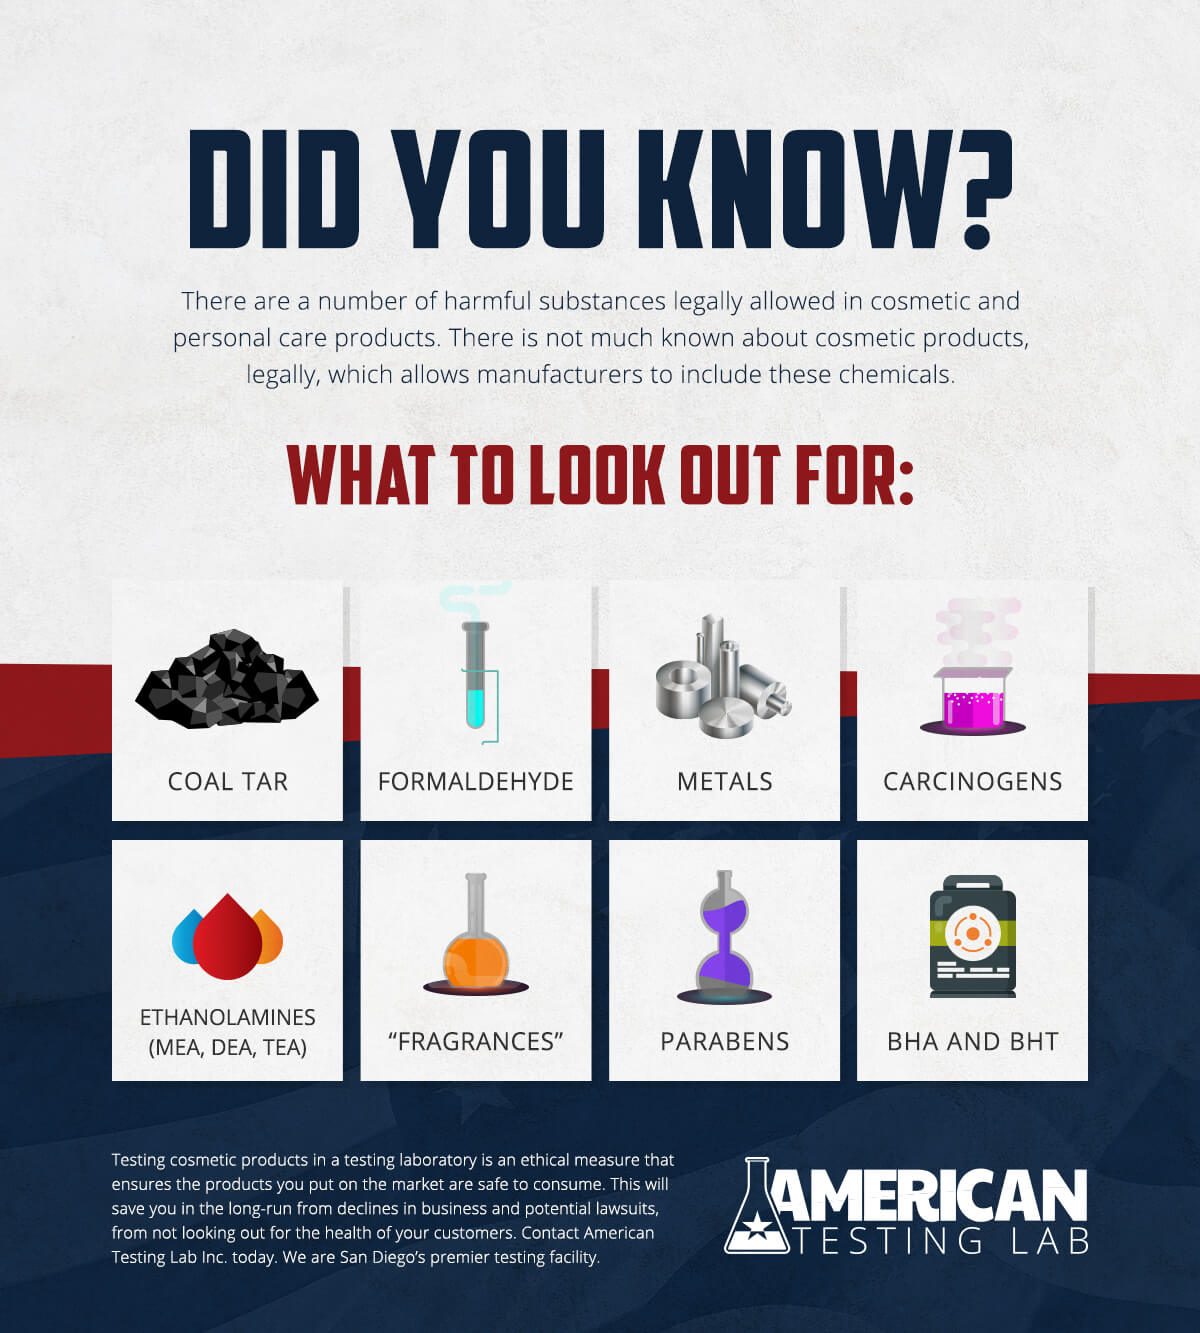 Toxic Chemicals Found In Cosmetics